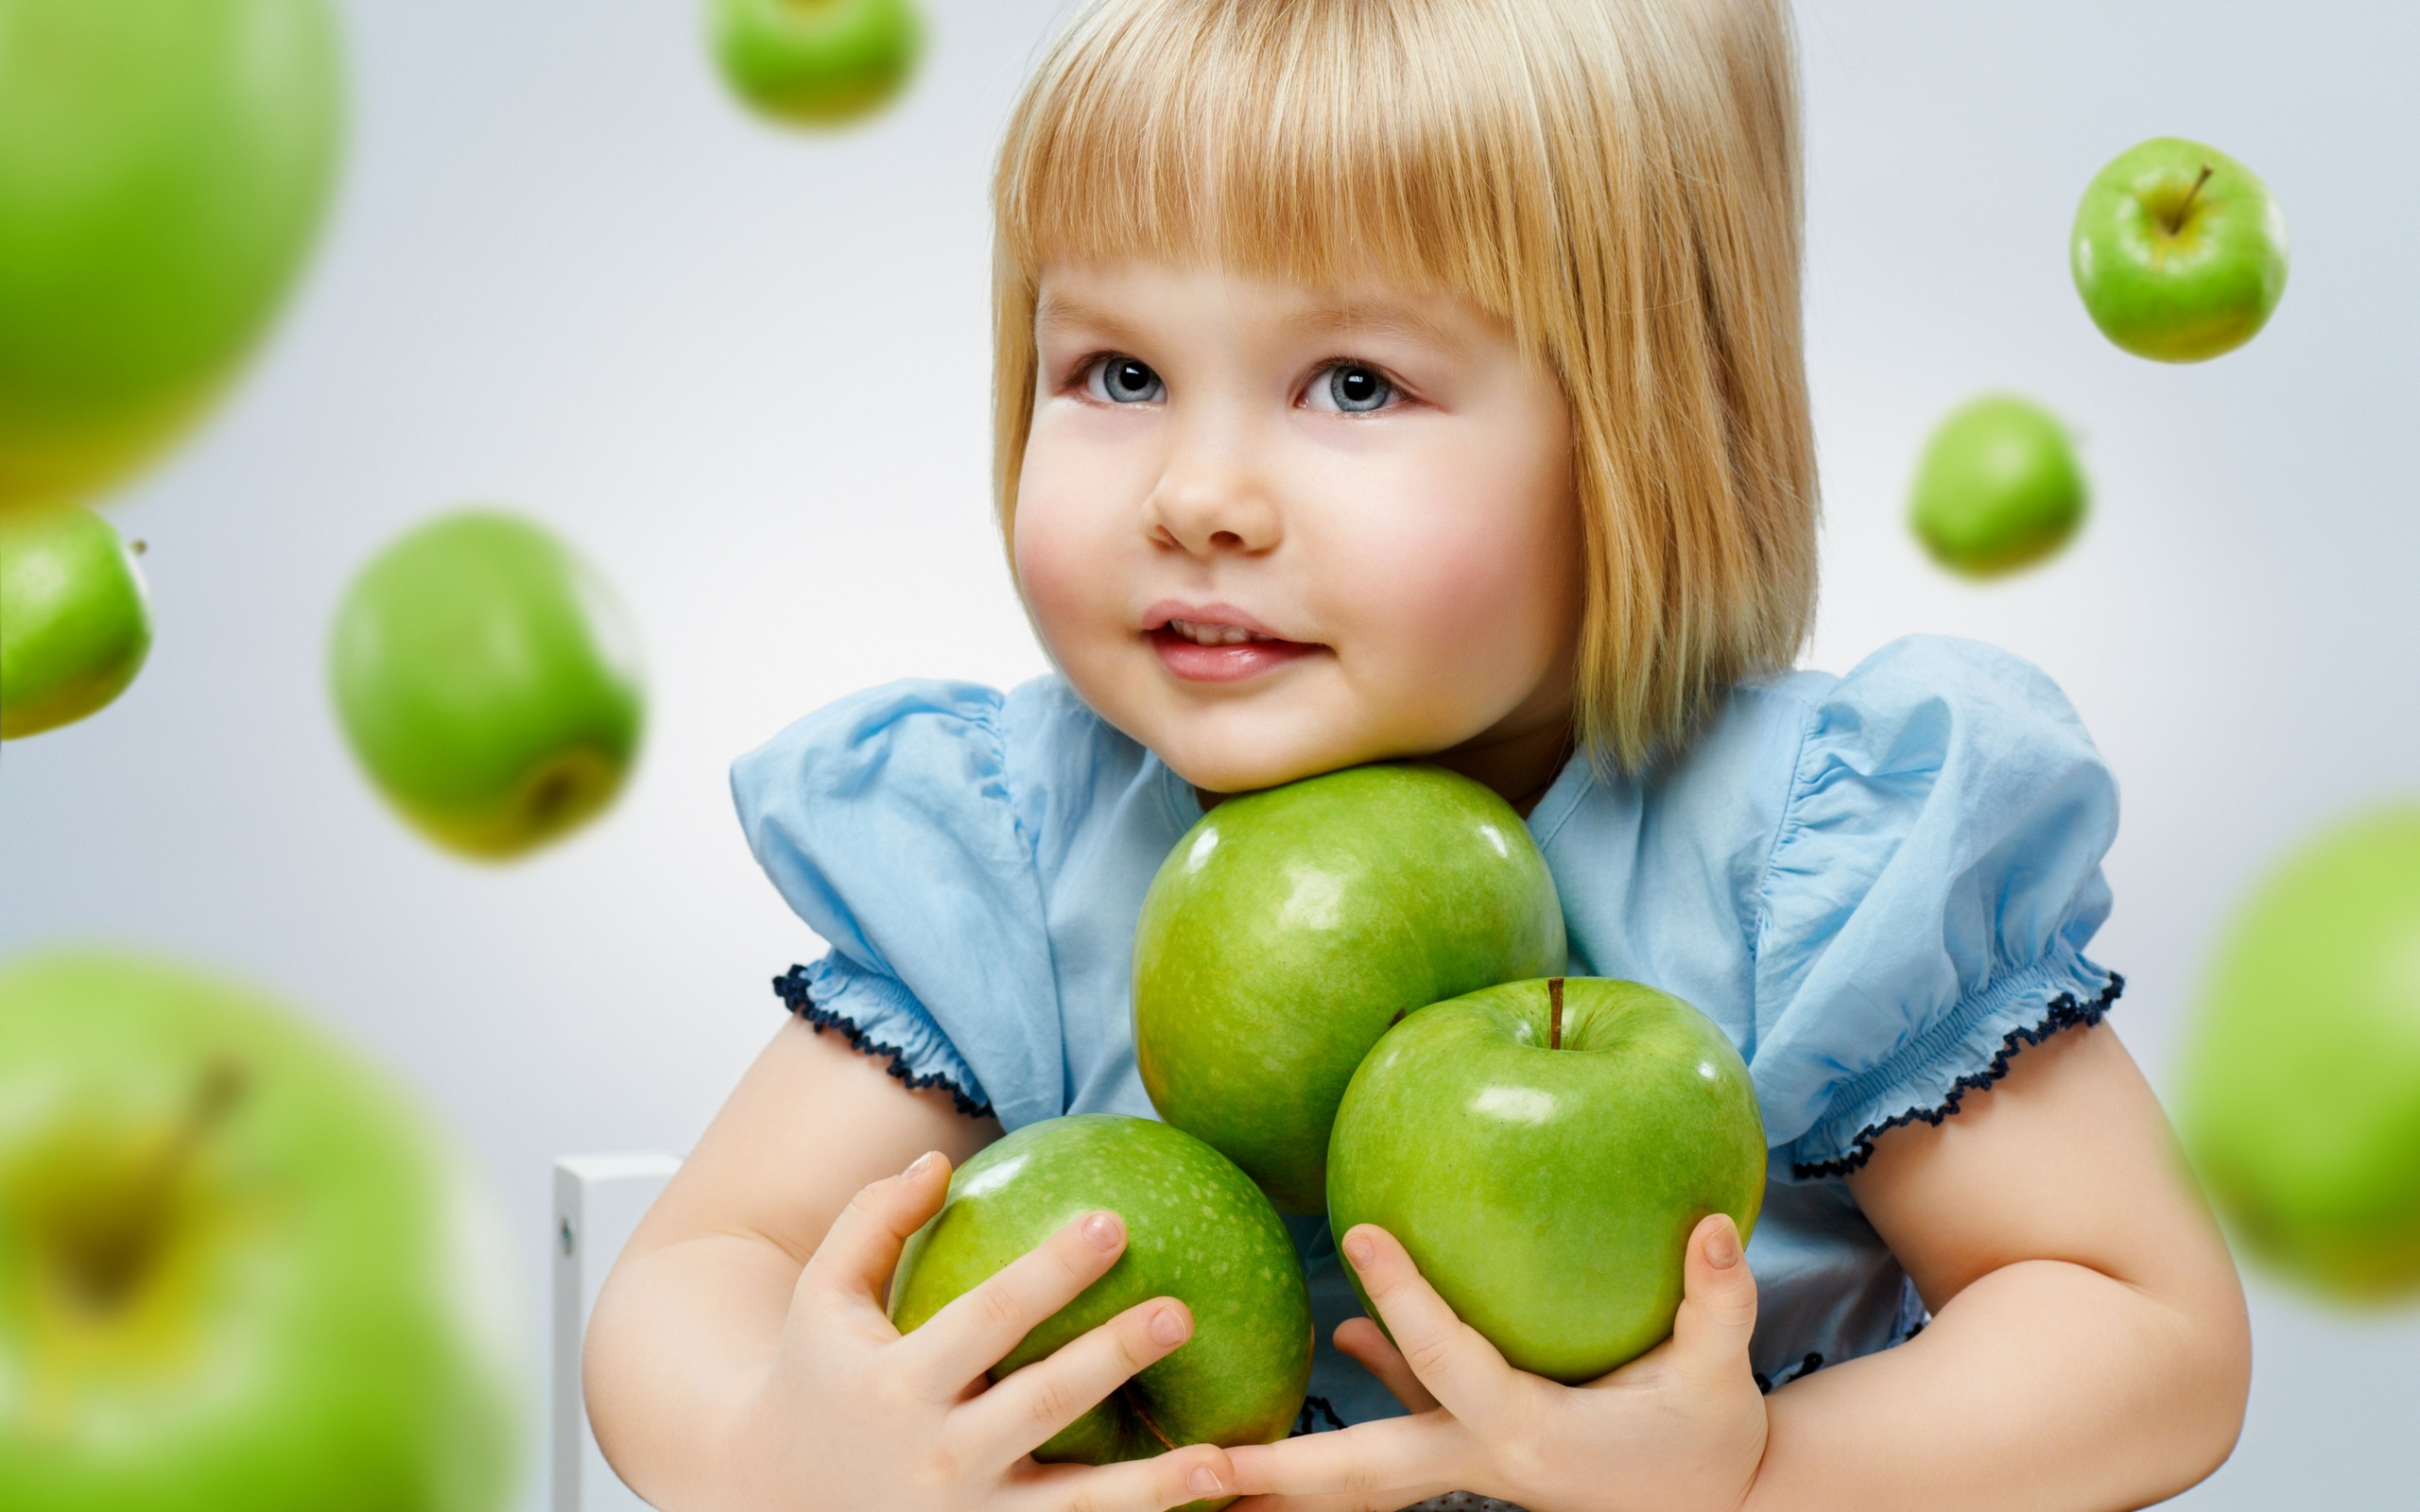 Cute Girl And Green Apple Wallpapers - 2560x1600 - 794055